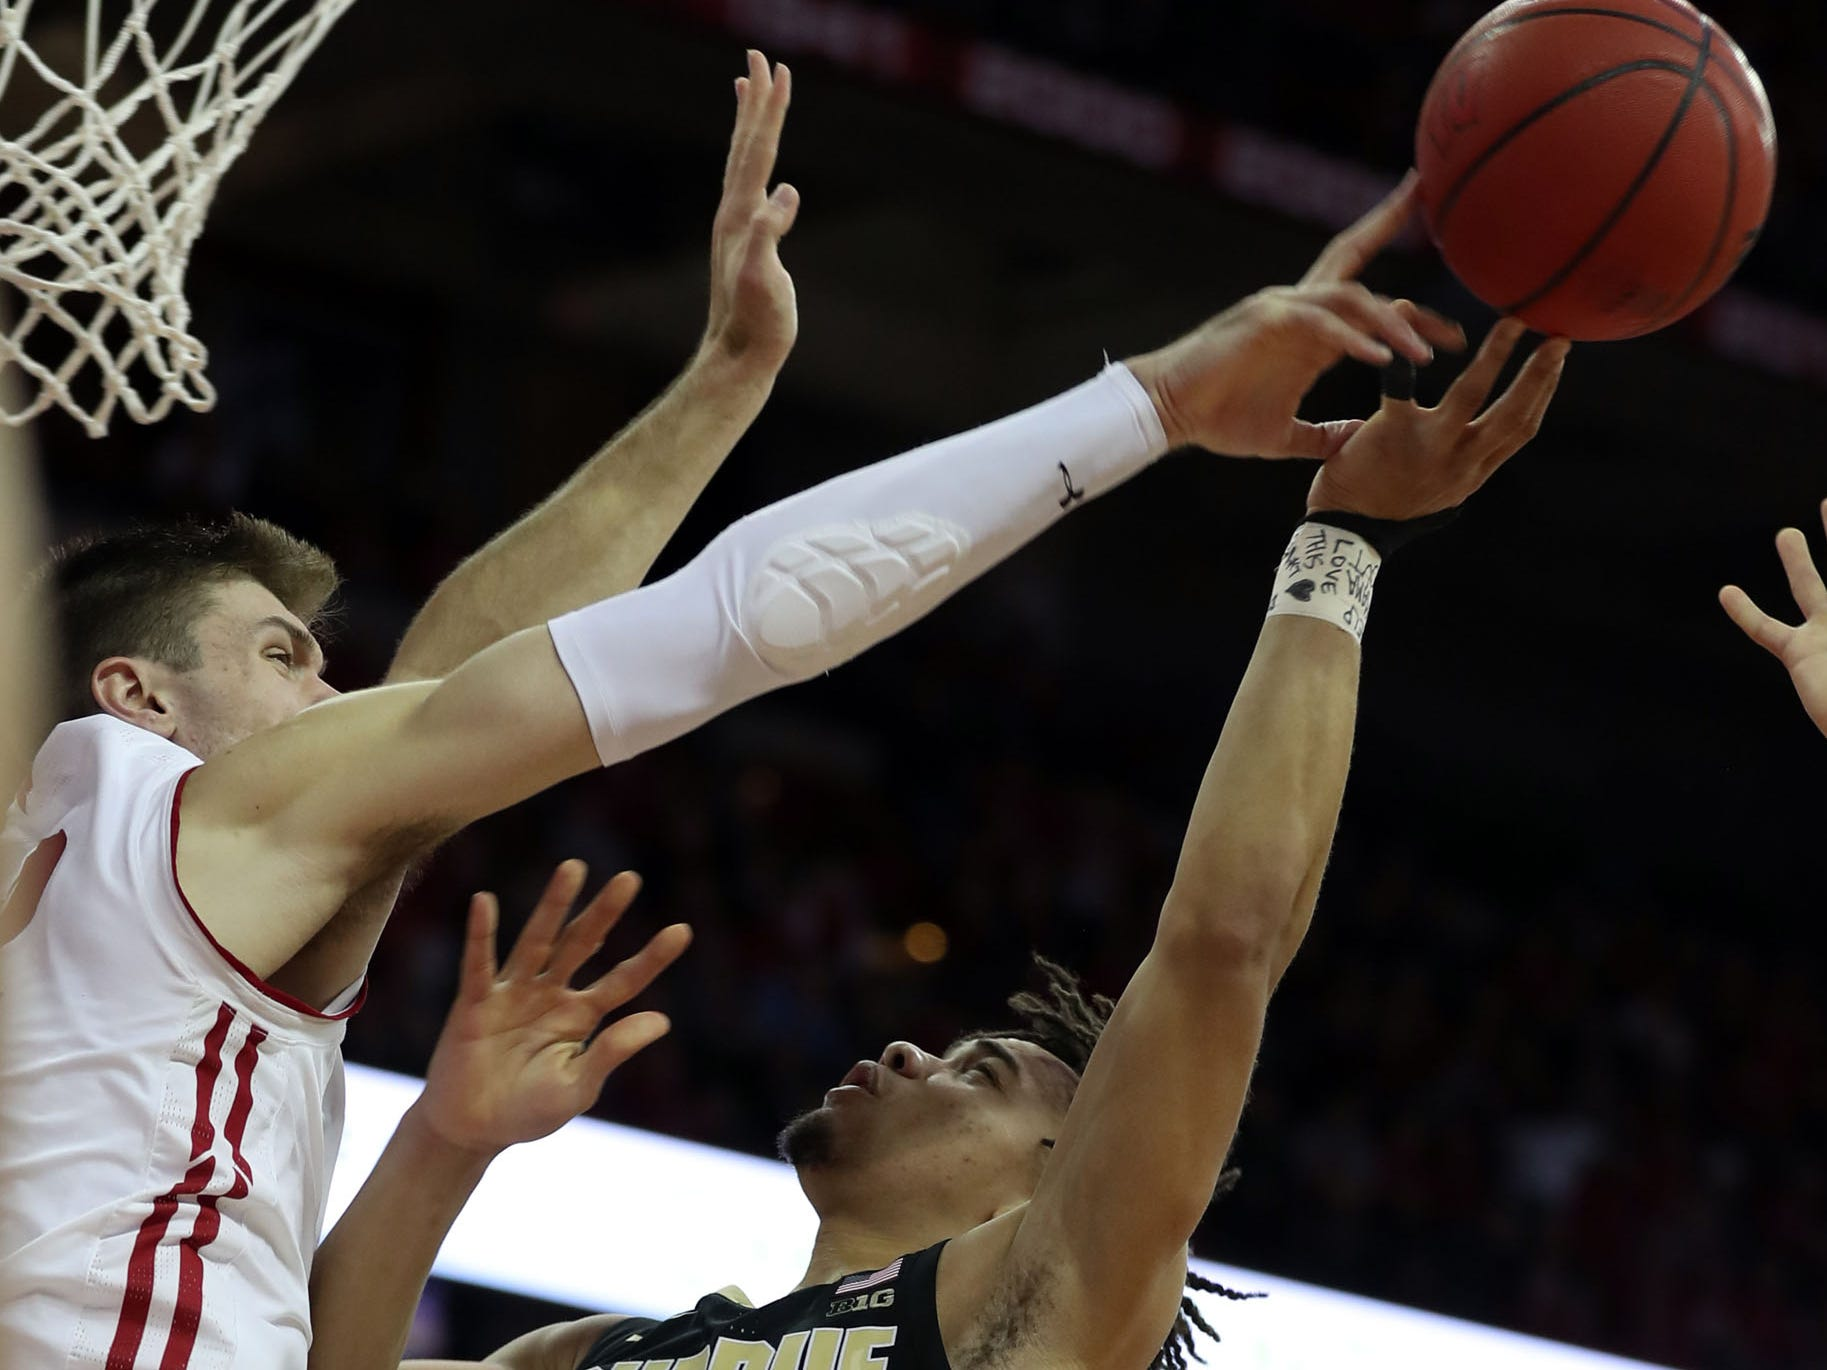 Wisconsin forward Ethan Happ blocks an attempted shot by Purdue guard Carsen Edwards during the first half Friday night.